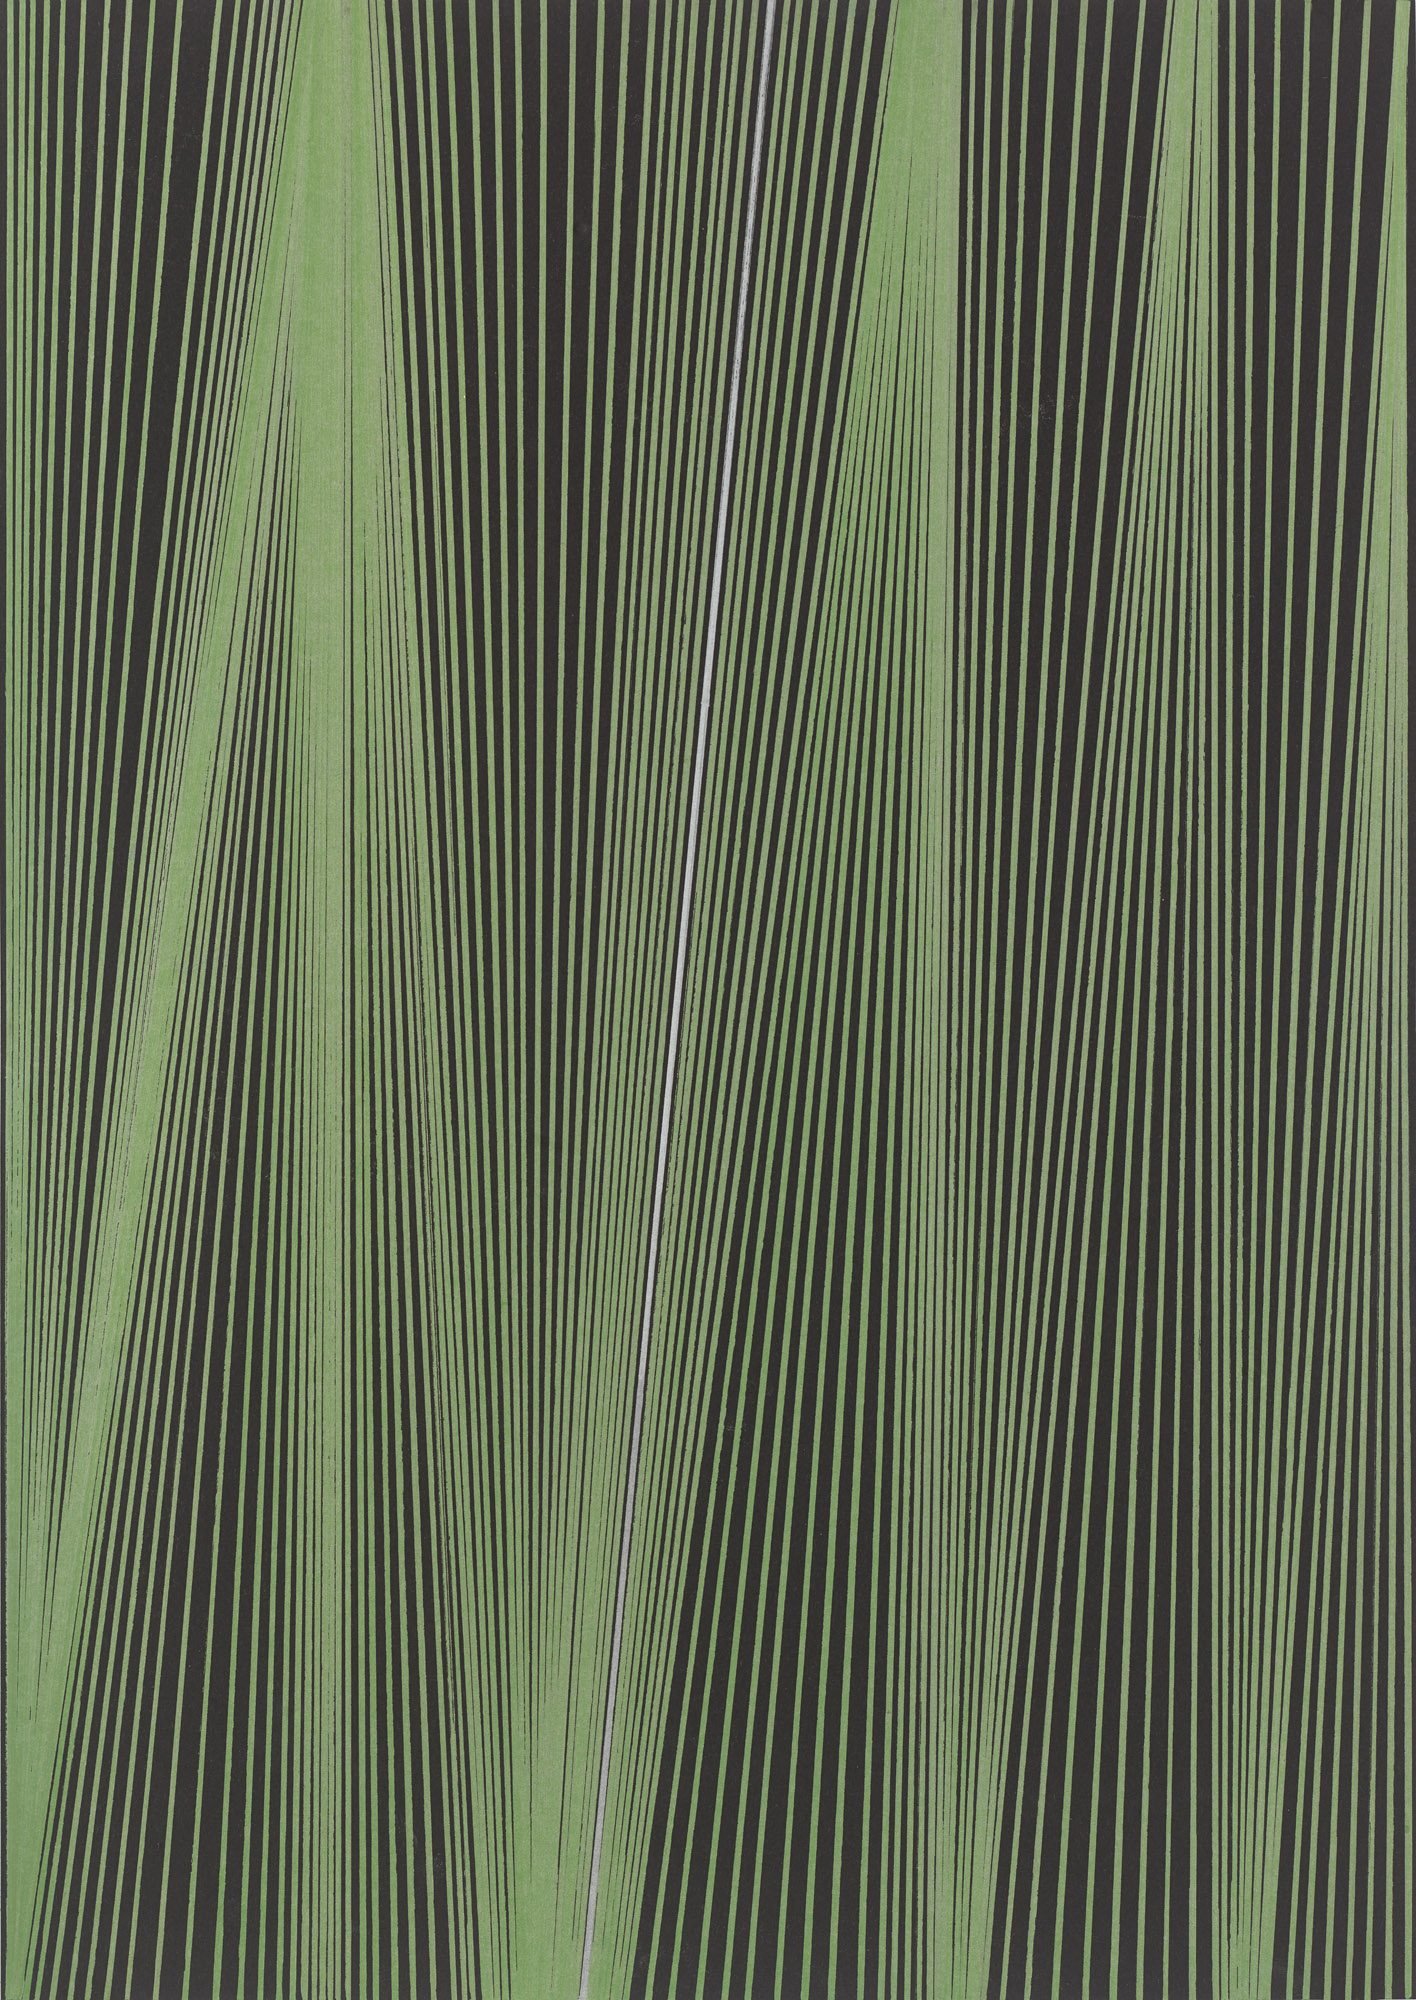 BK P44961 | UNTITLED | GREEN AND SILVER METALLIC ACRYLIC ON BLACK CARD BOARD | 42 X 29,7 CM | 2019.jpg